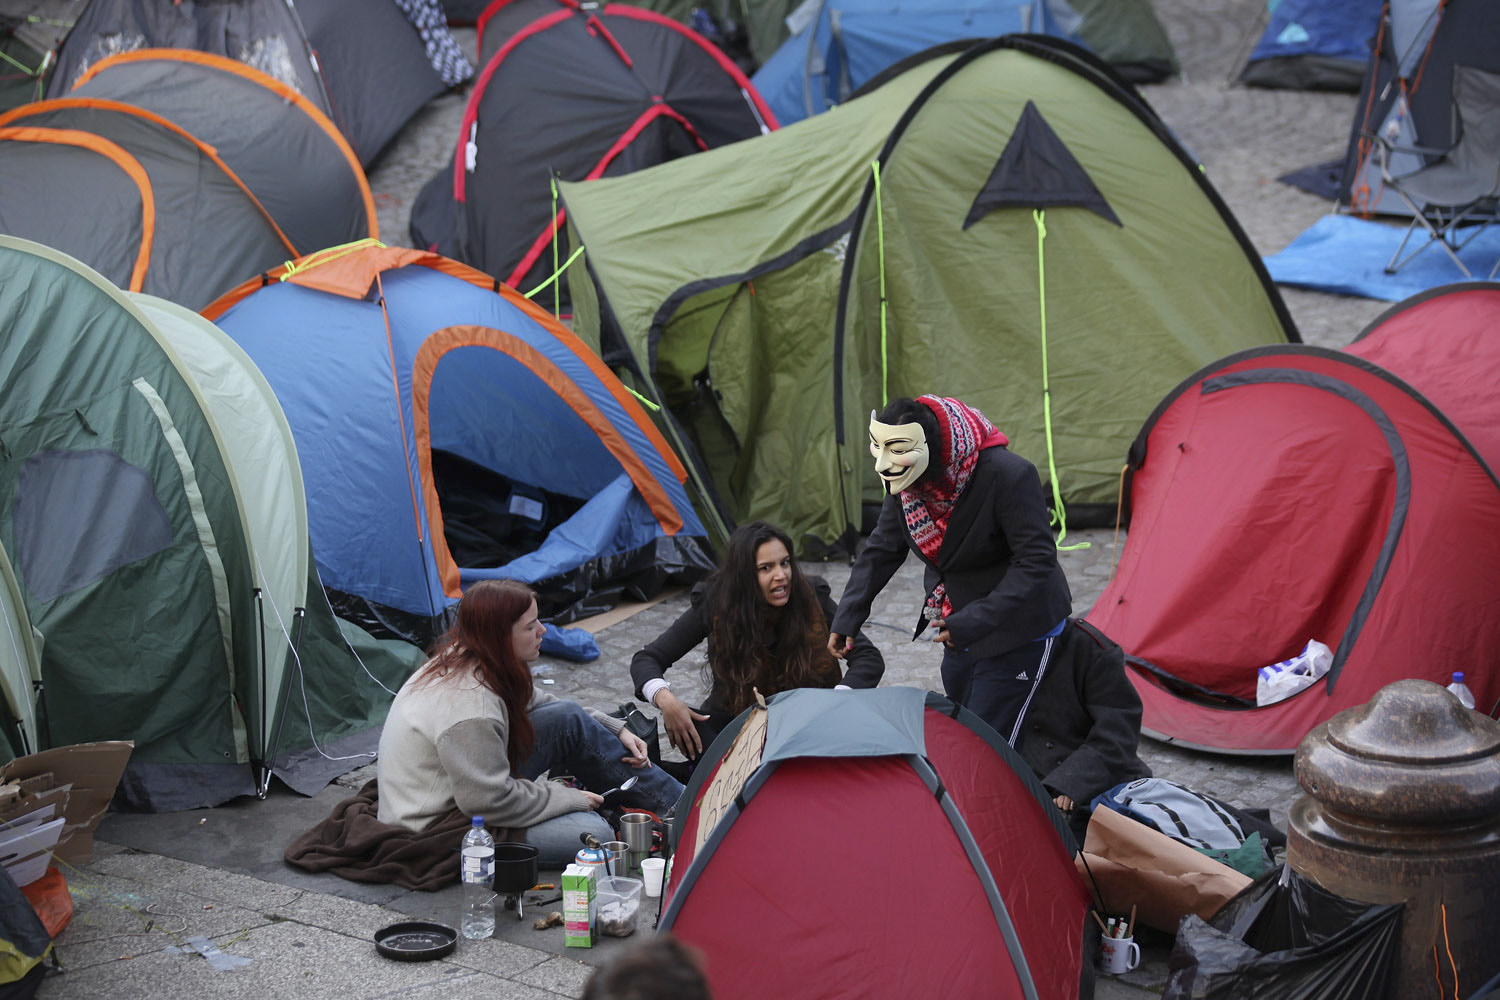 October 17, 2011. Tents are pitched in front of St. Pauls' Cathedral on the third day of a protest to occupy the London Stock Exchange in London, England.